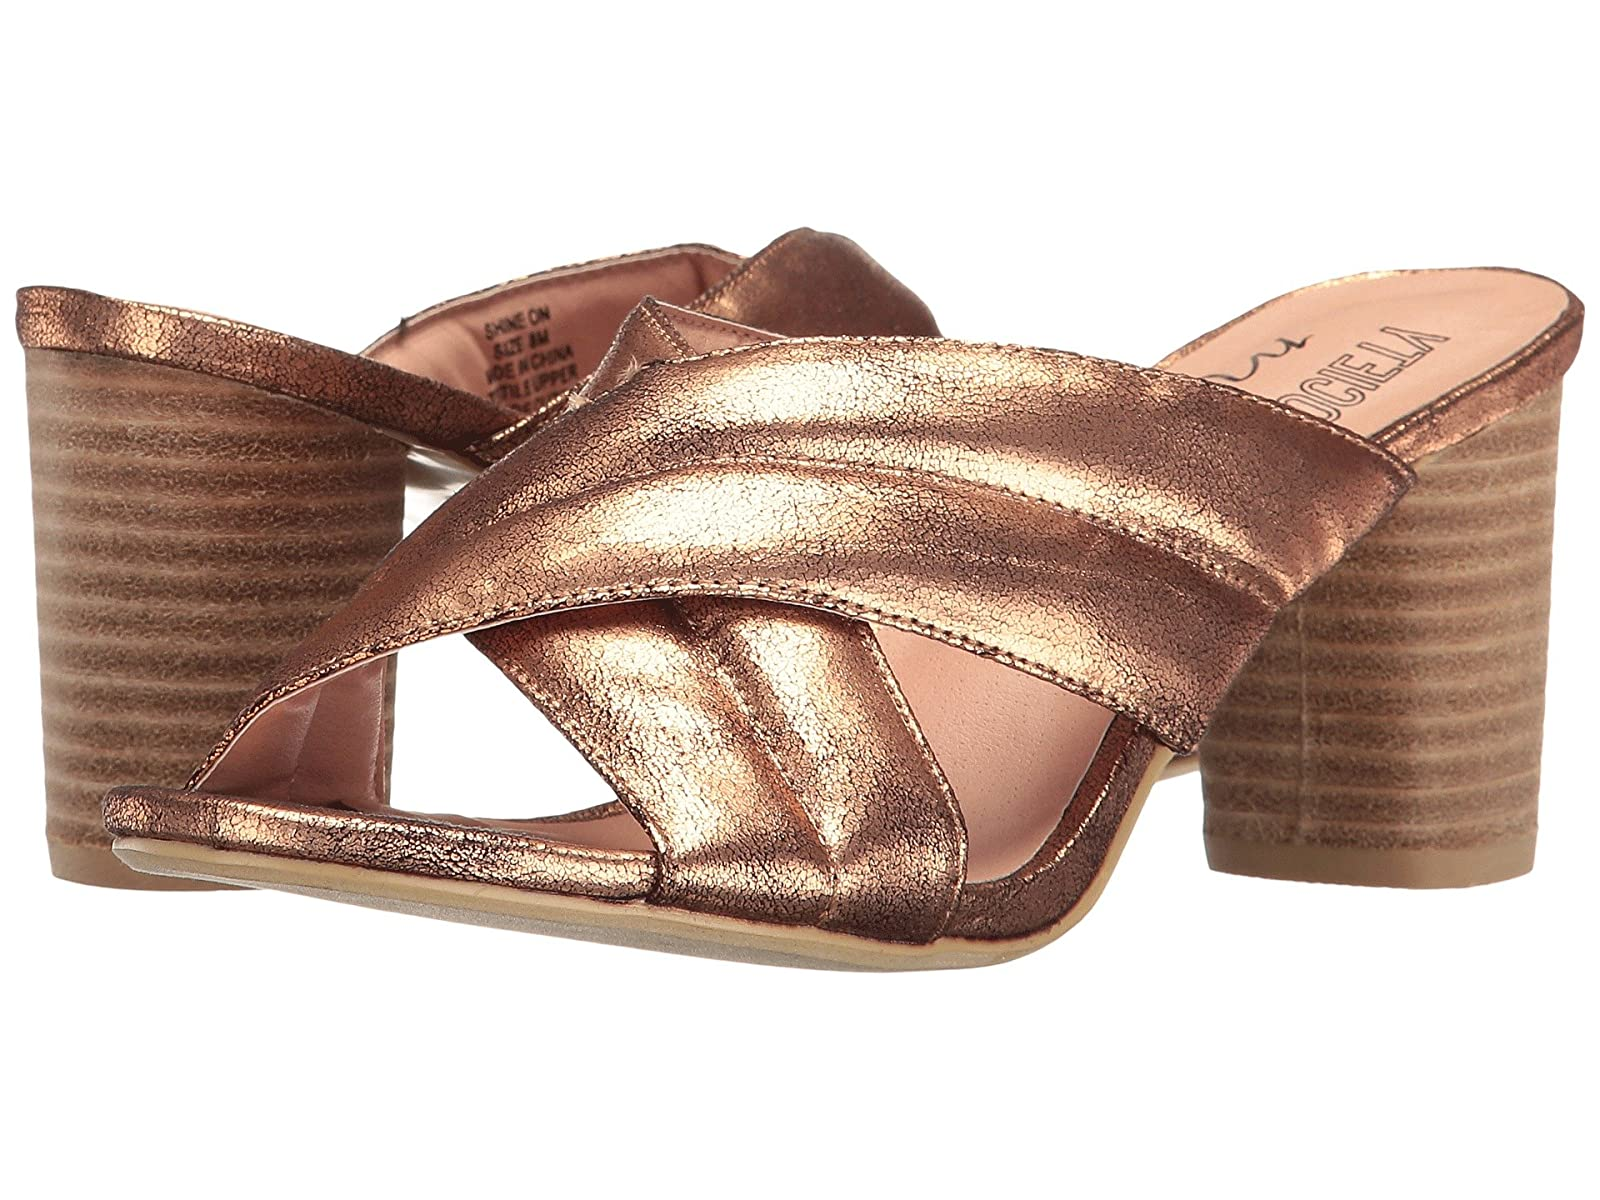 Matisse Matisse x Amuse Society - Shine OnCheap and distinctive eye-catching shoes